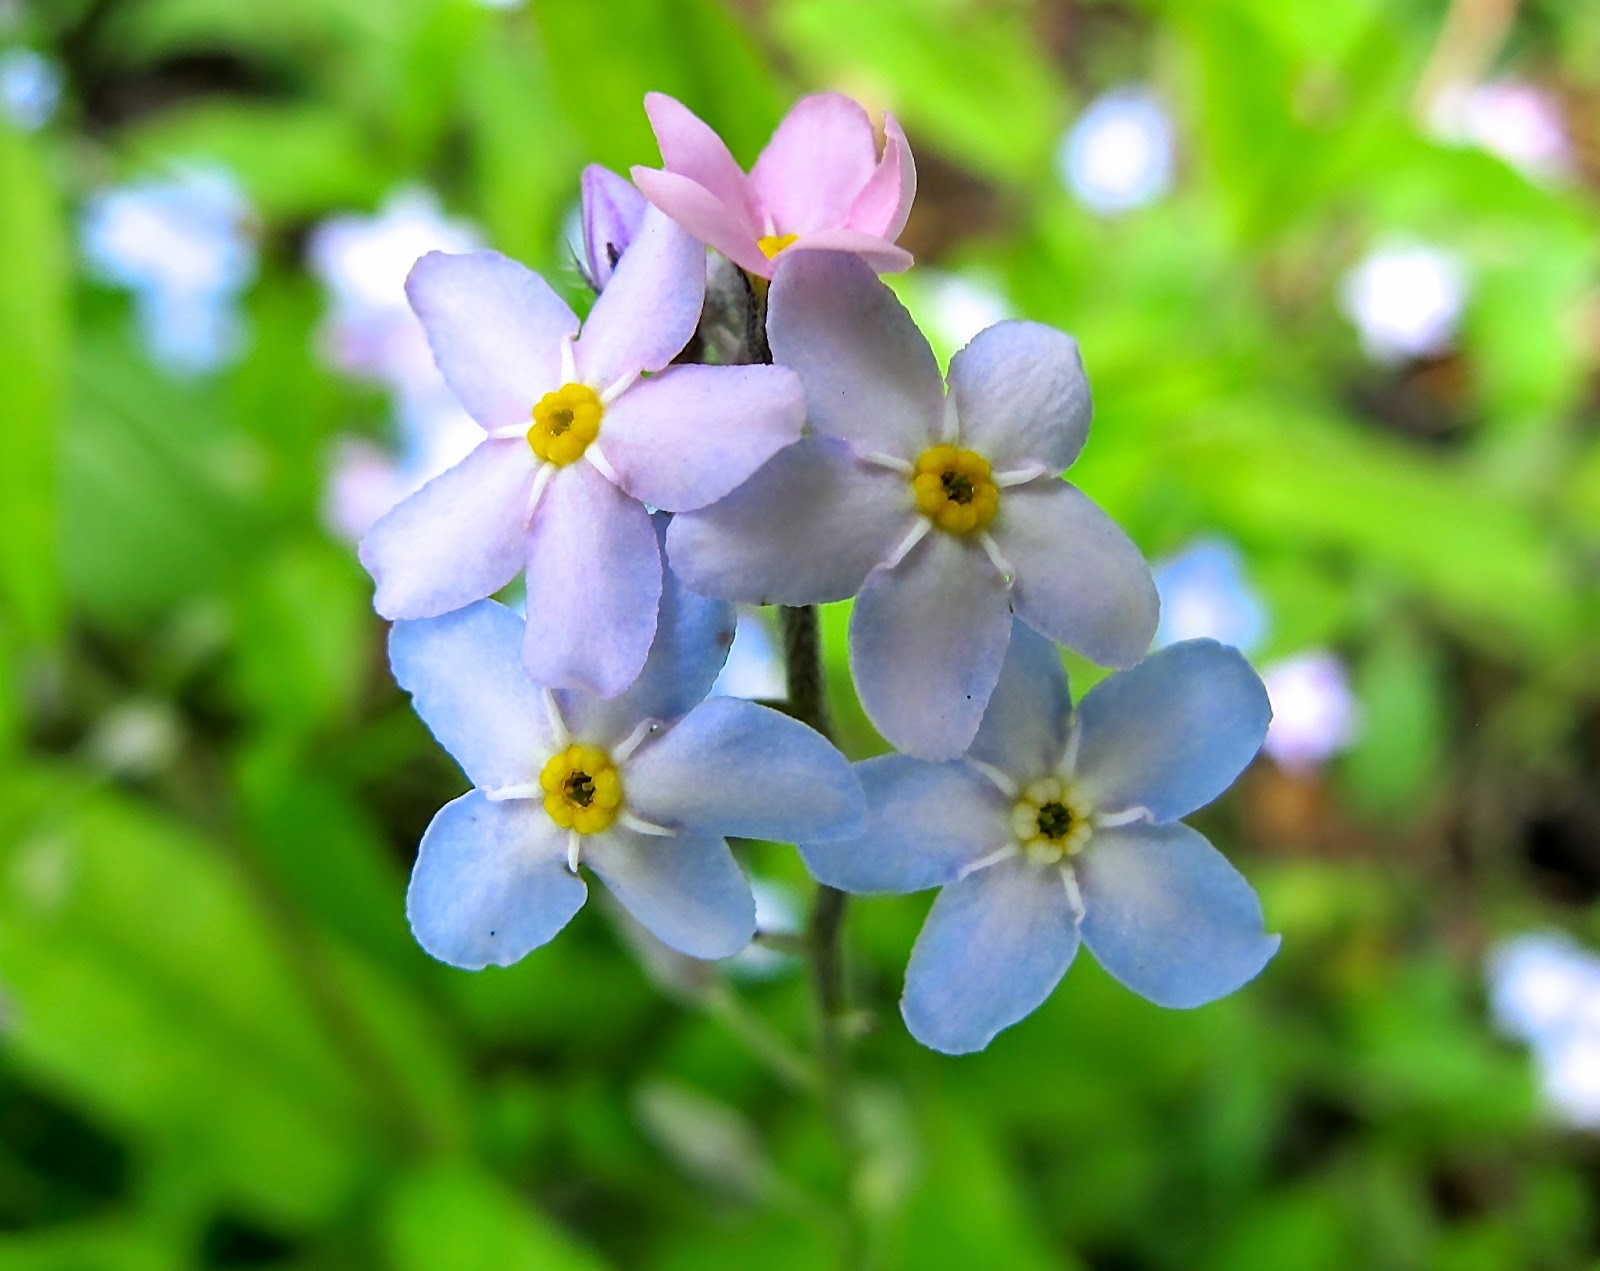 forget-me-knot photograph